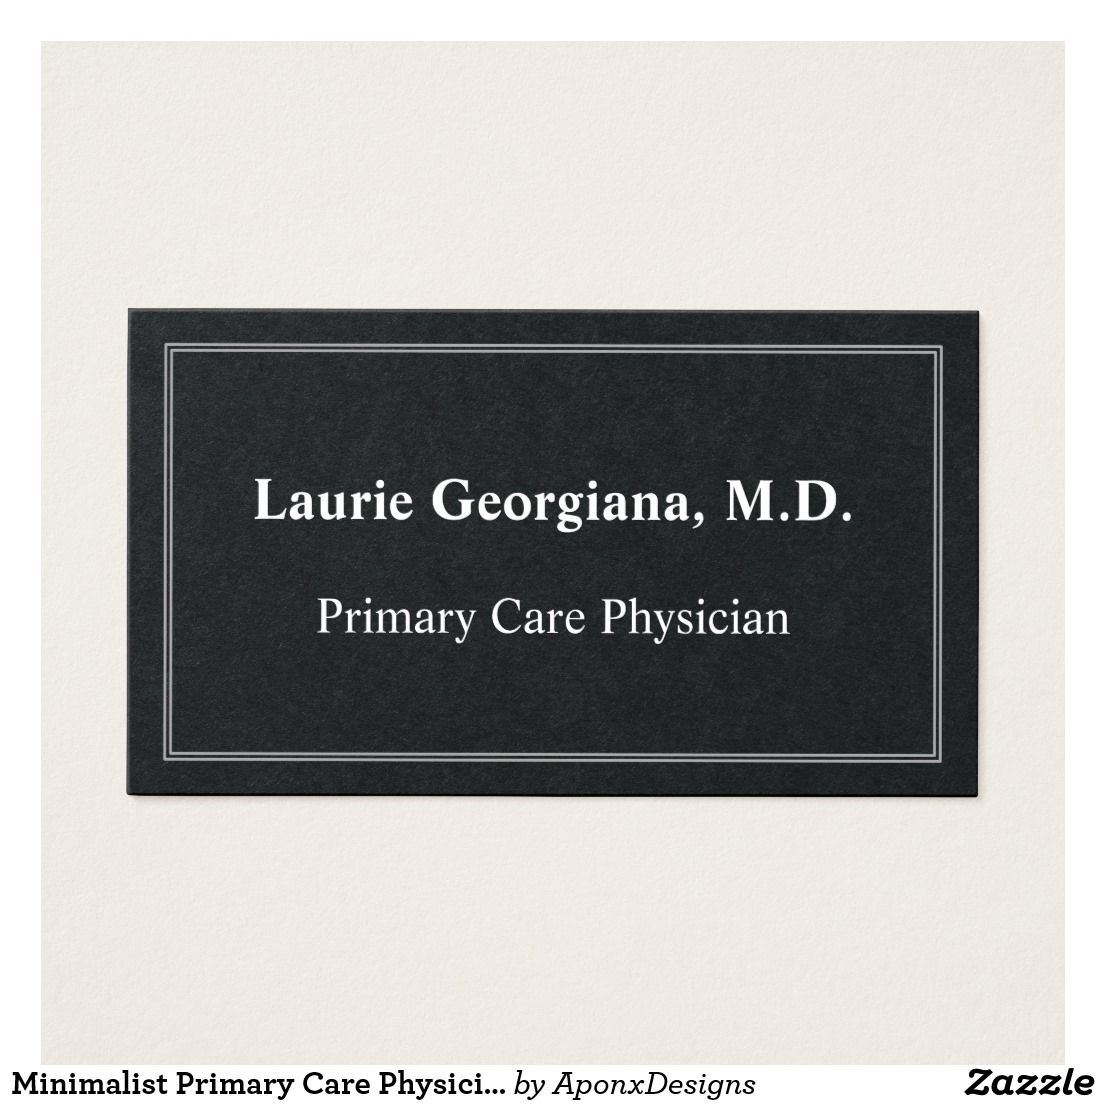 Minimalist Primary Care Physician Business Card | Primary care ...